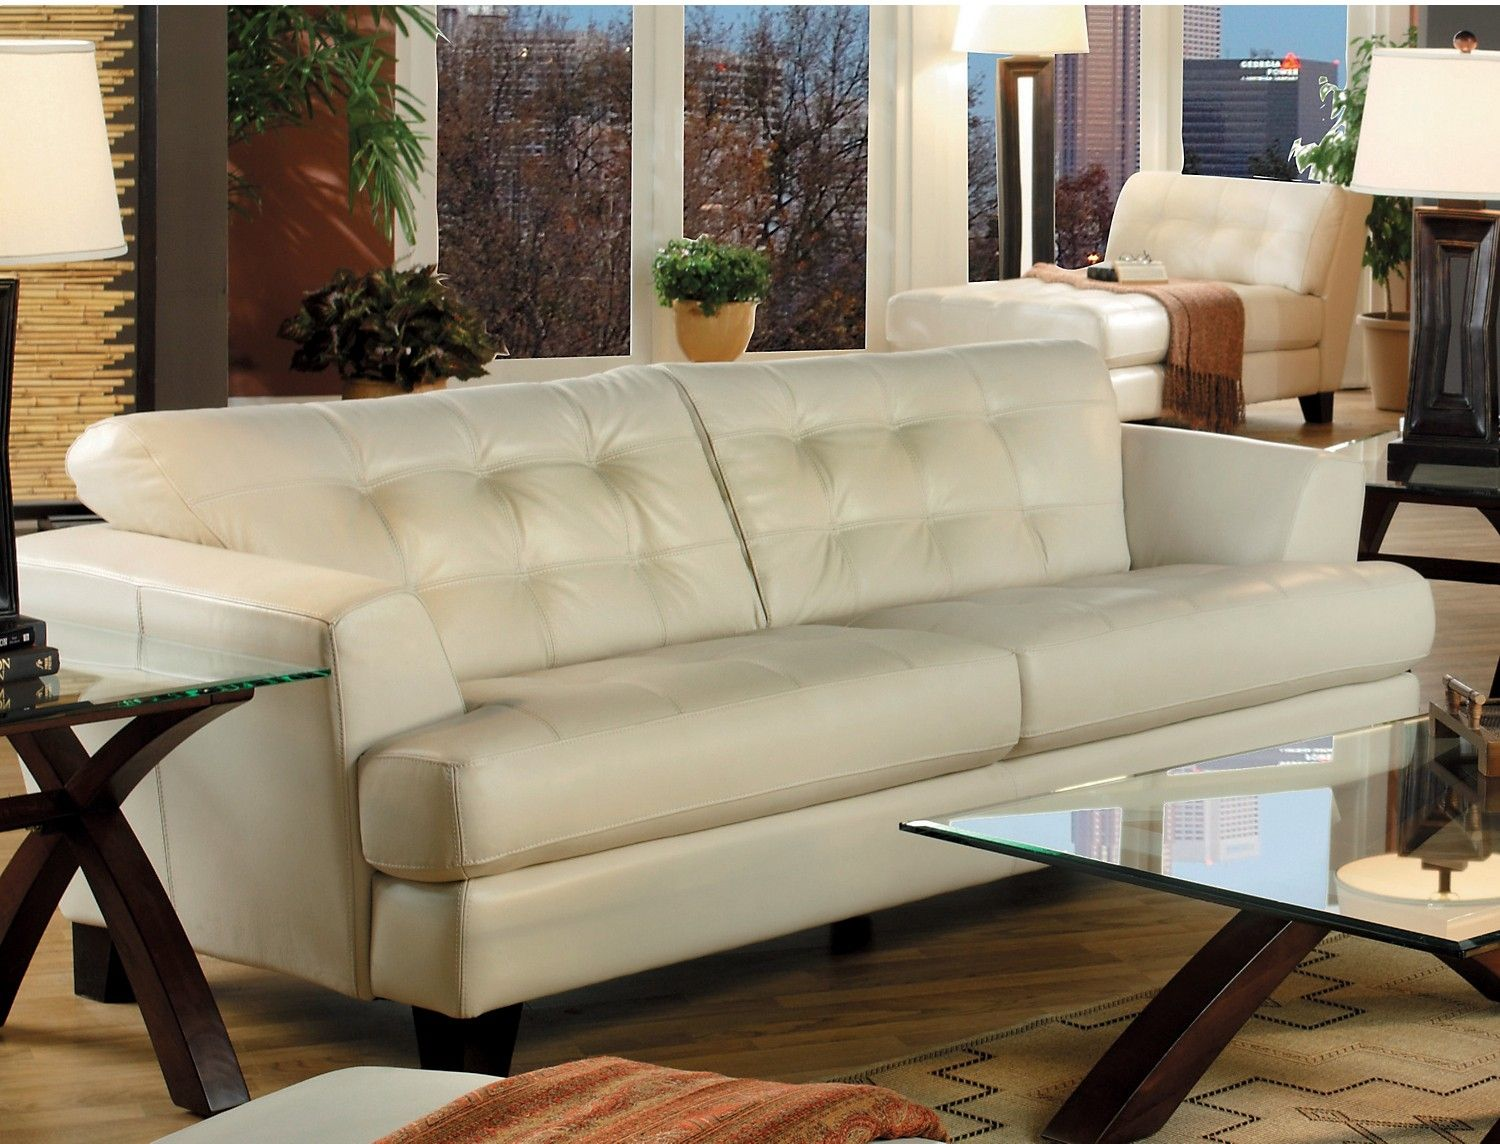 Ivory Living Room Furniture 17 Best Images About Living Room On Pinterest Upholstered Sofa